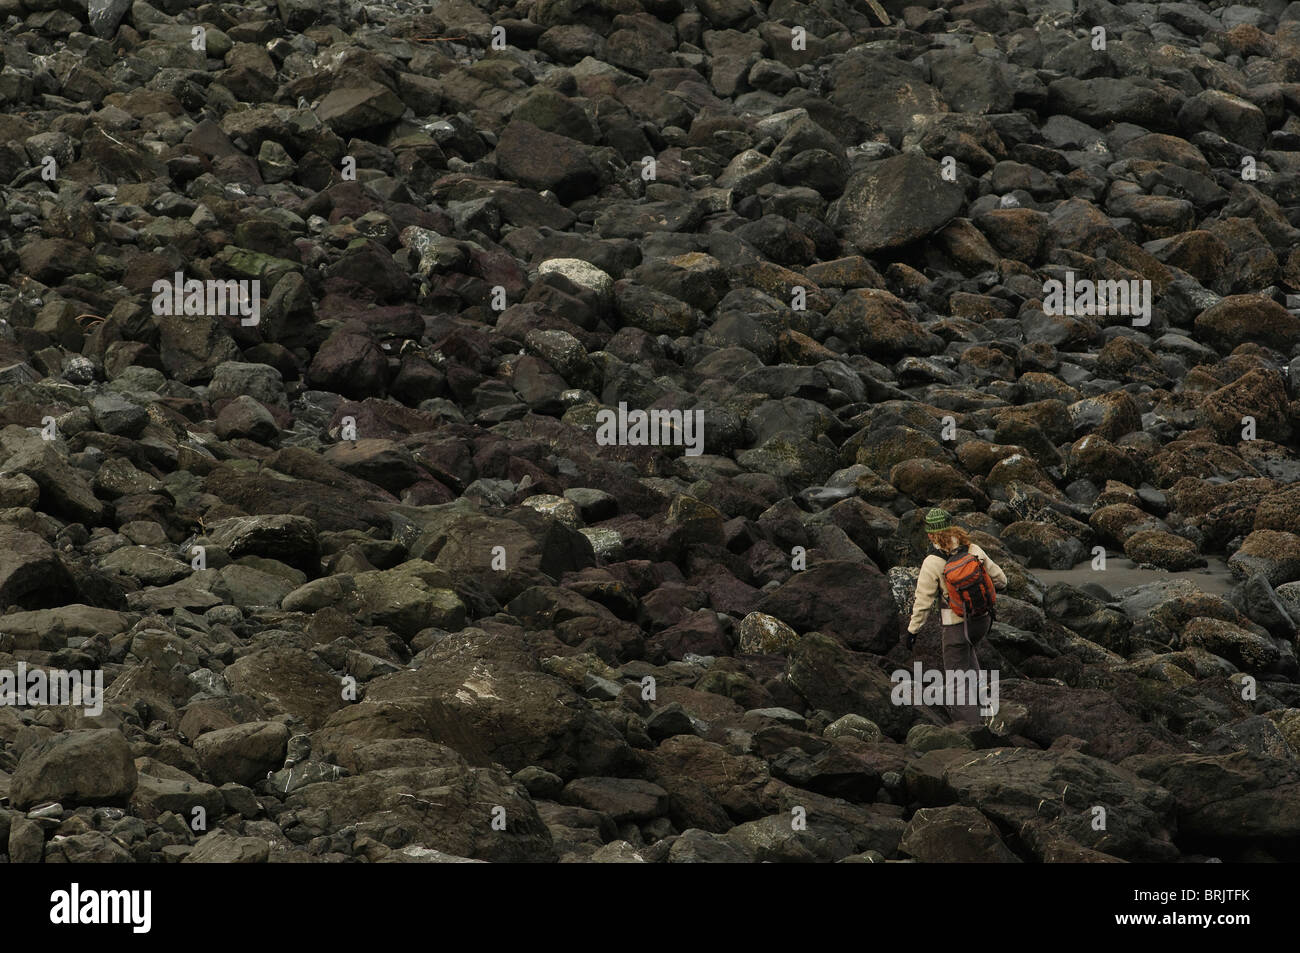 A woman hikes on a beach on the Oregon Coast. - Stock Image